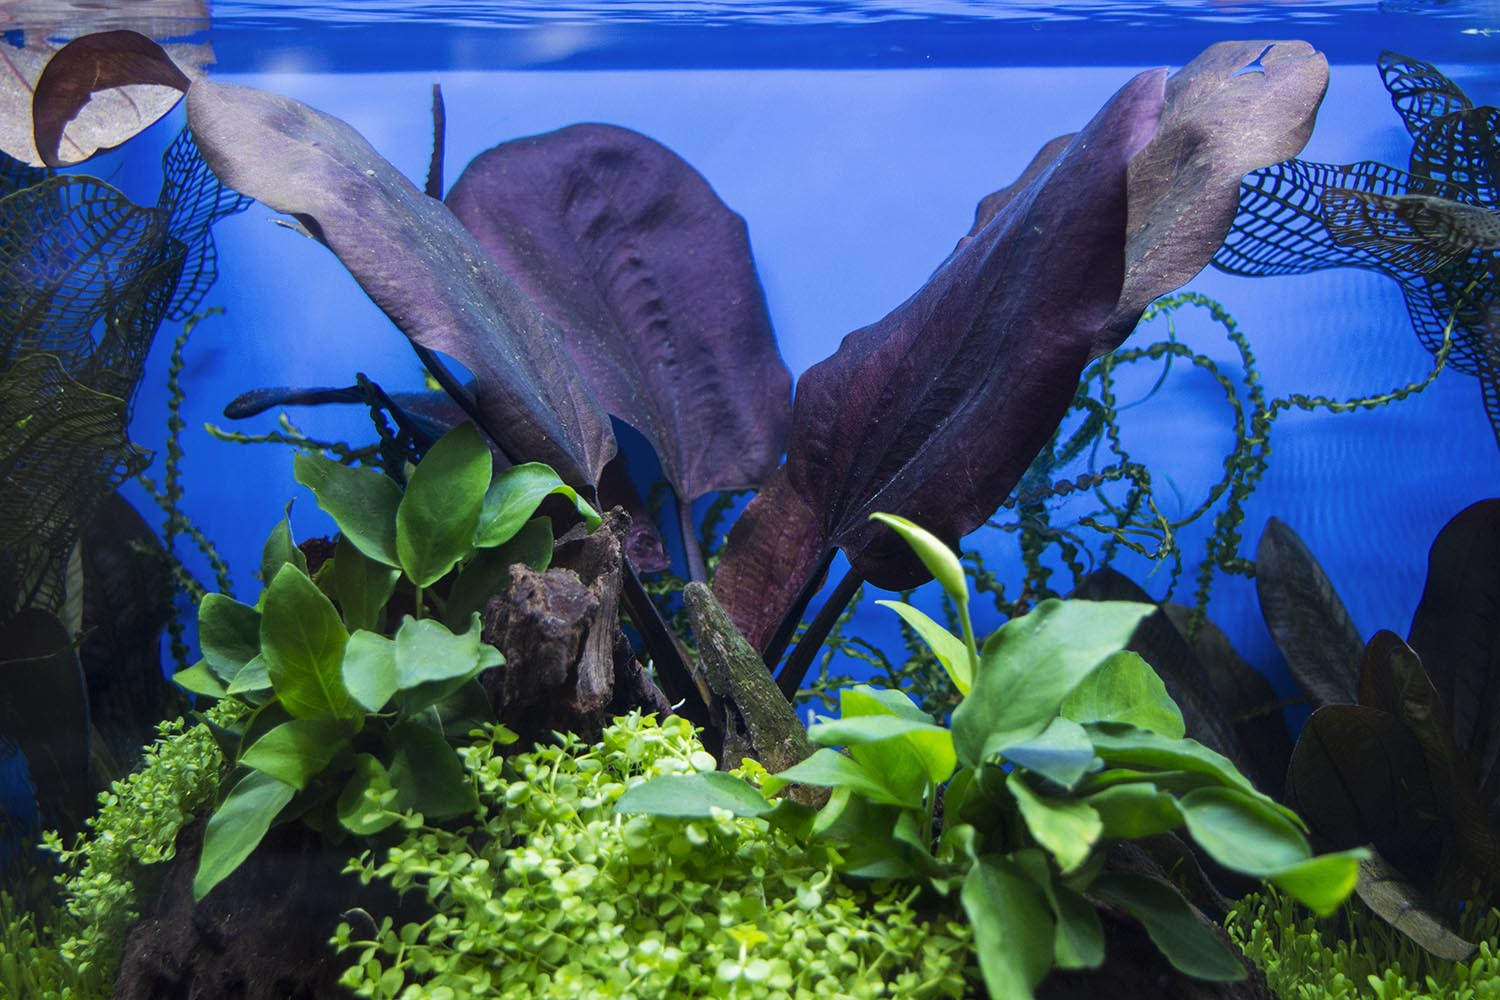 Freshwater aquarium fish orlando - Fish Weren T The Only Aquatic Life On Display The Centerpiece Of This Tank